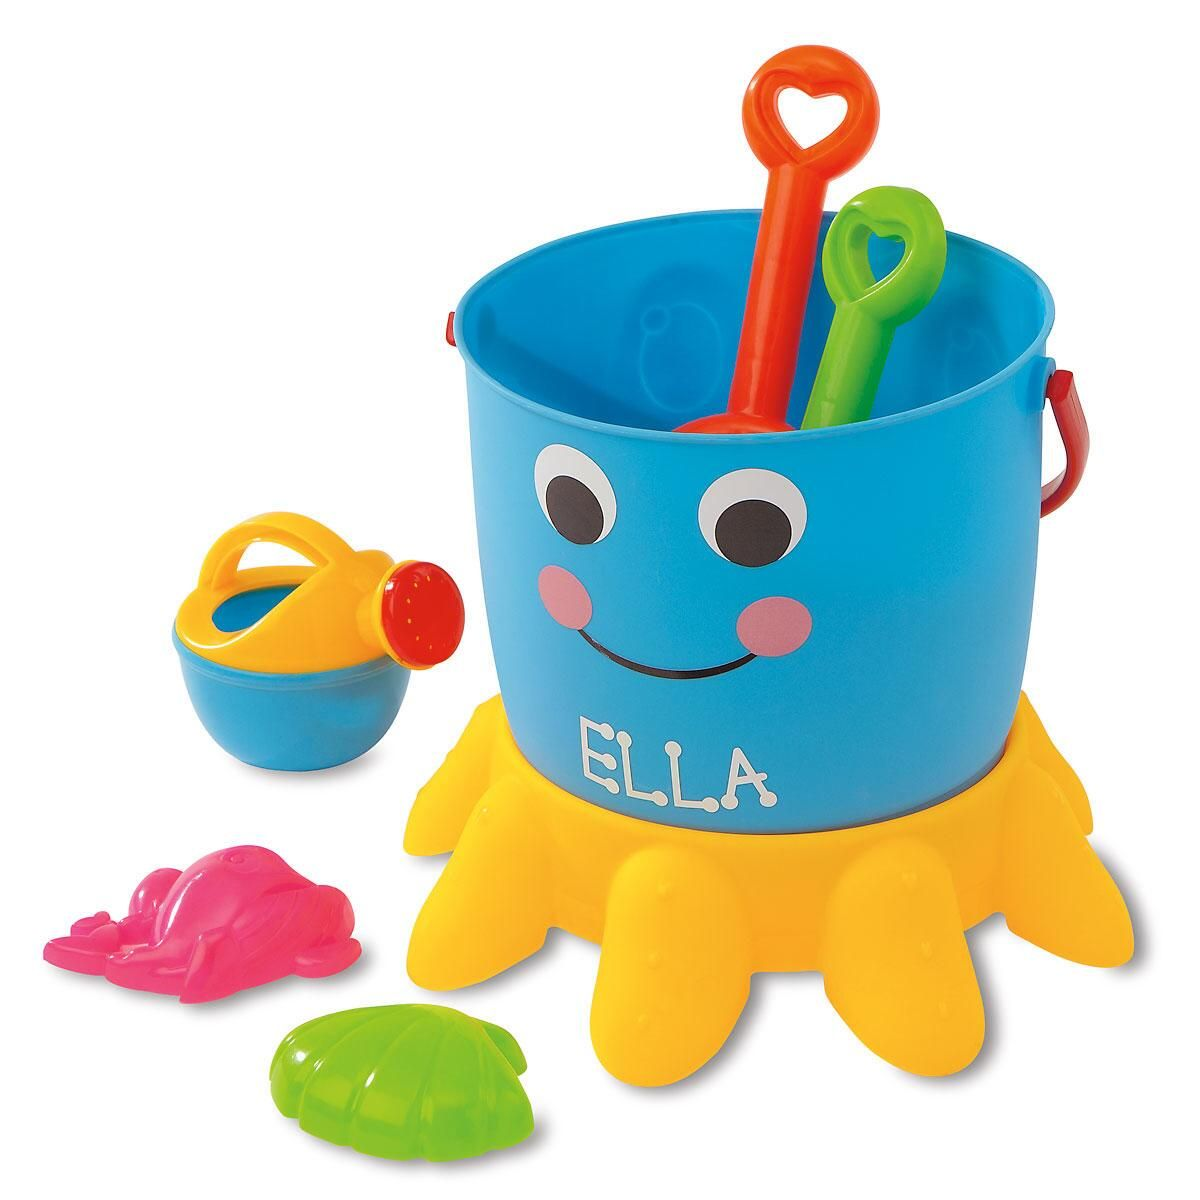 Octopus Personalized Bucket